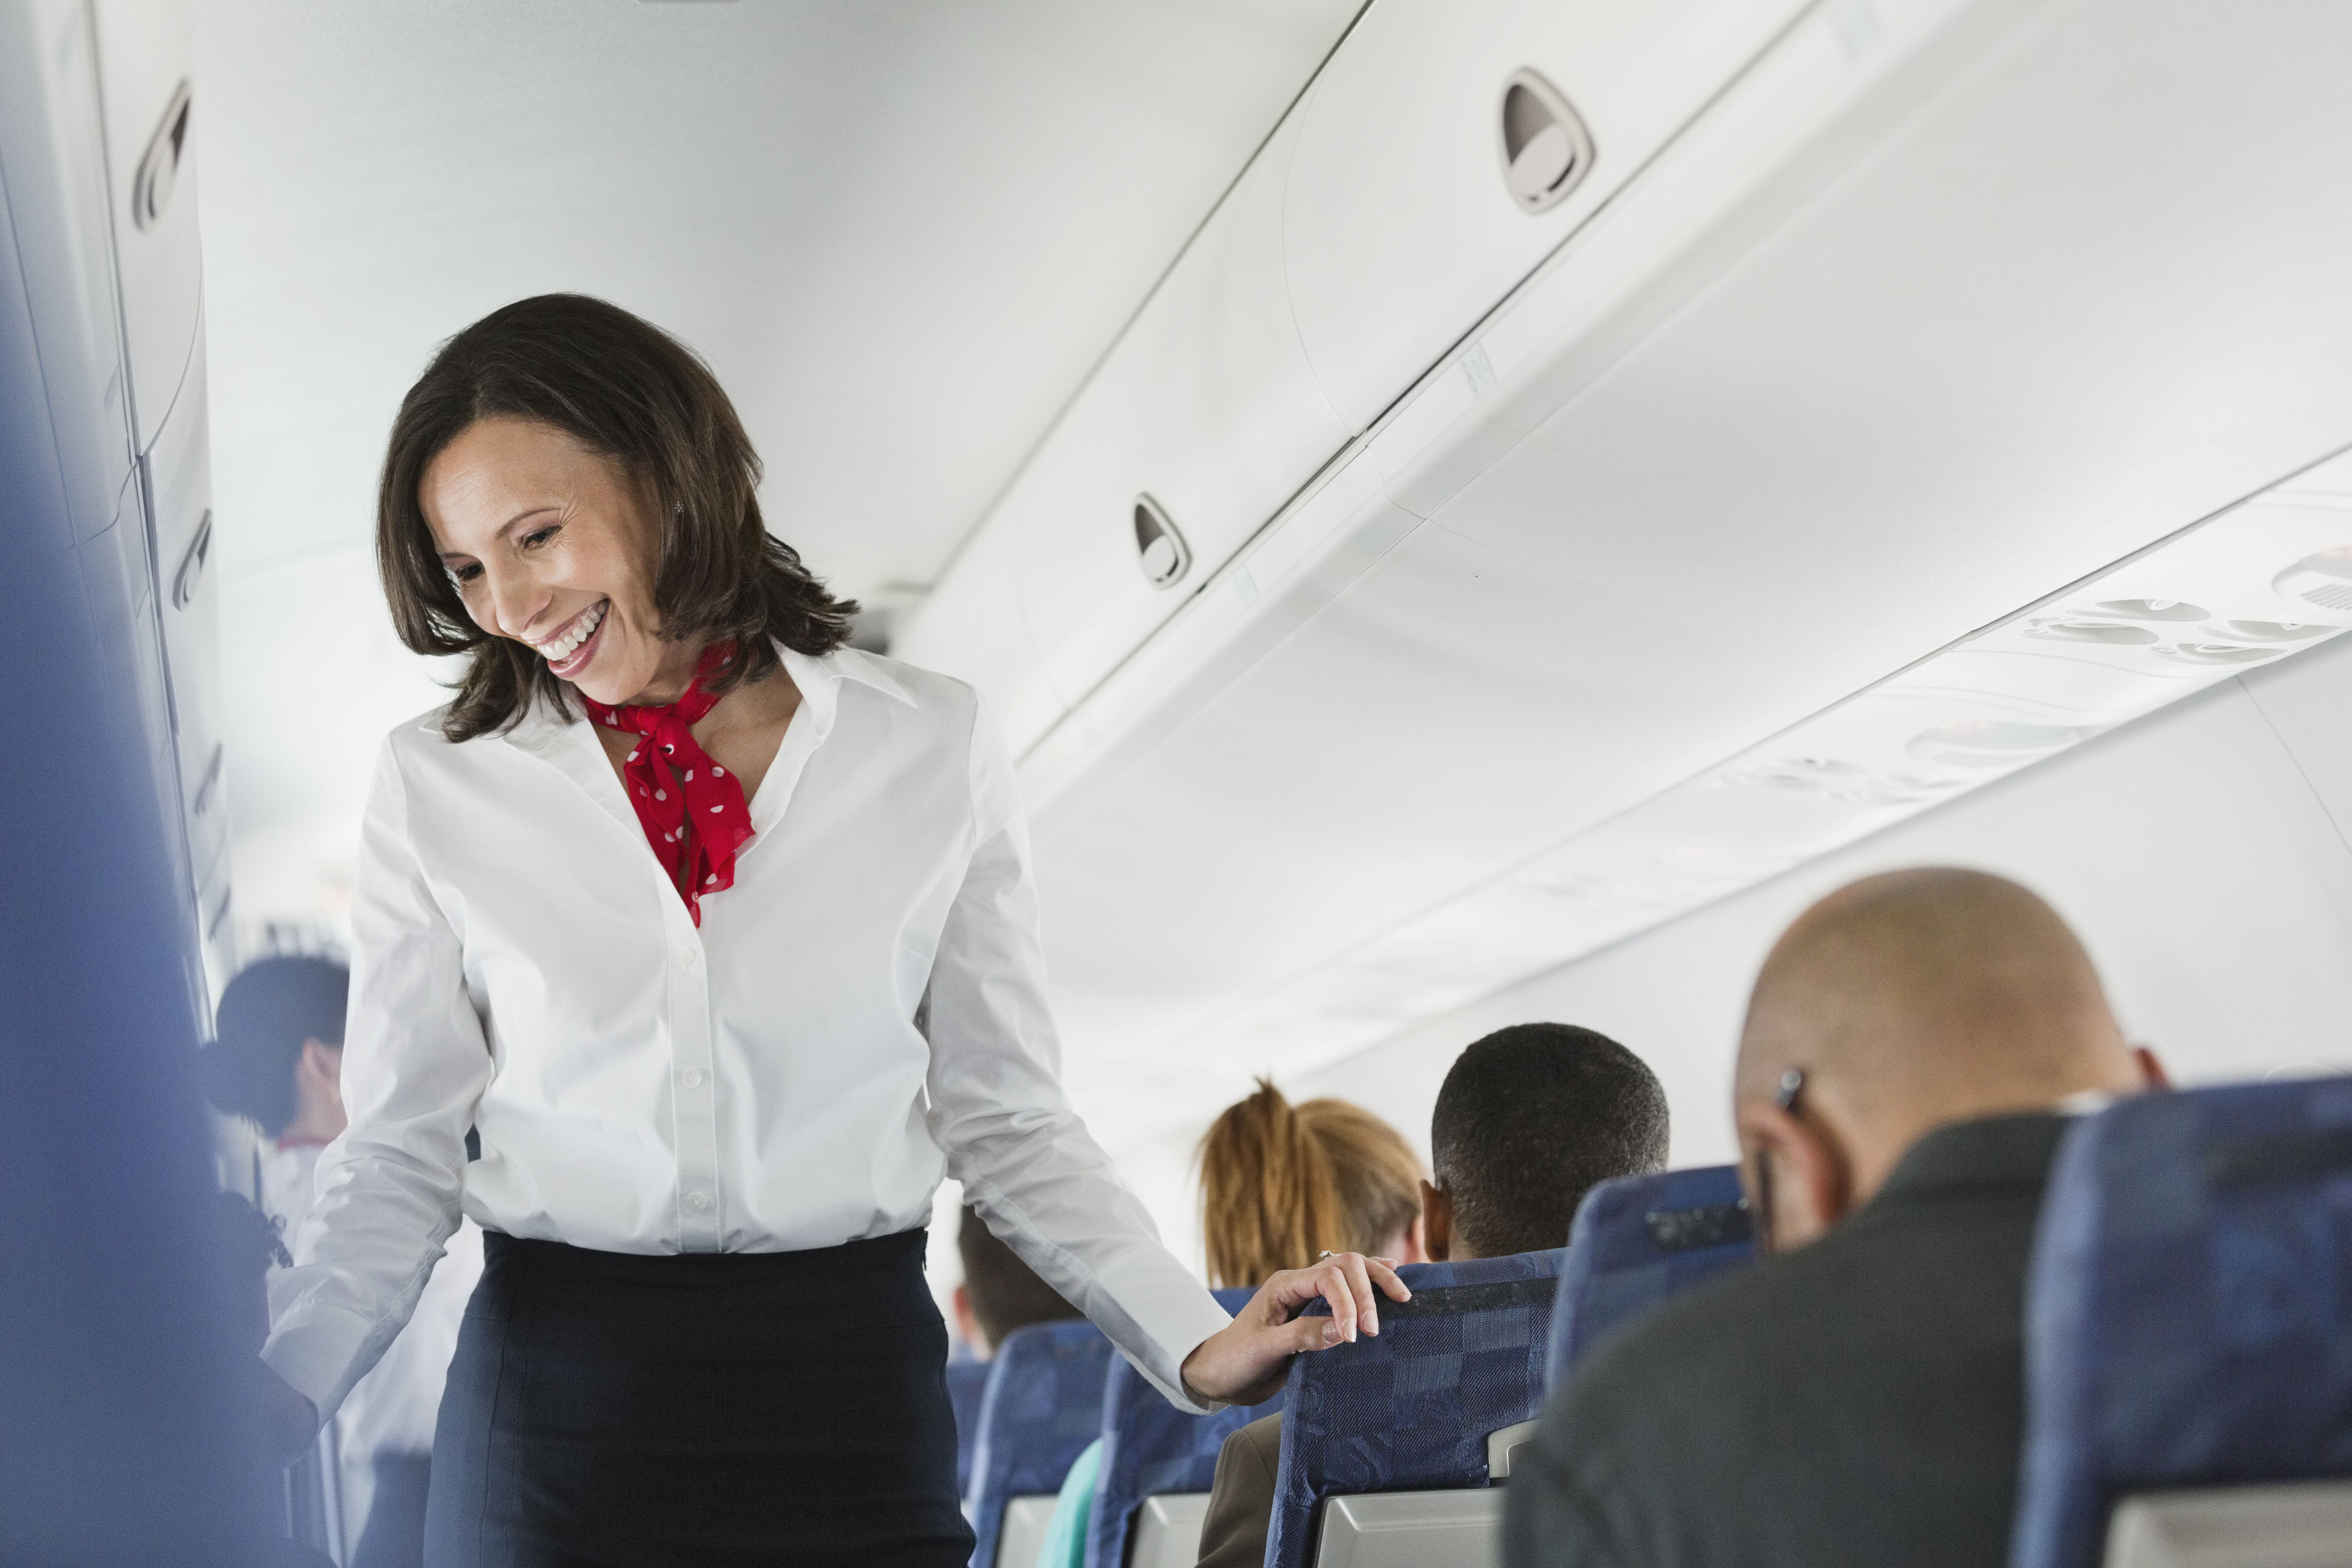 Is It Ever OK to Tip a Flight Attendant? Here's What the Experts Say